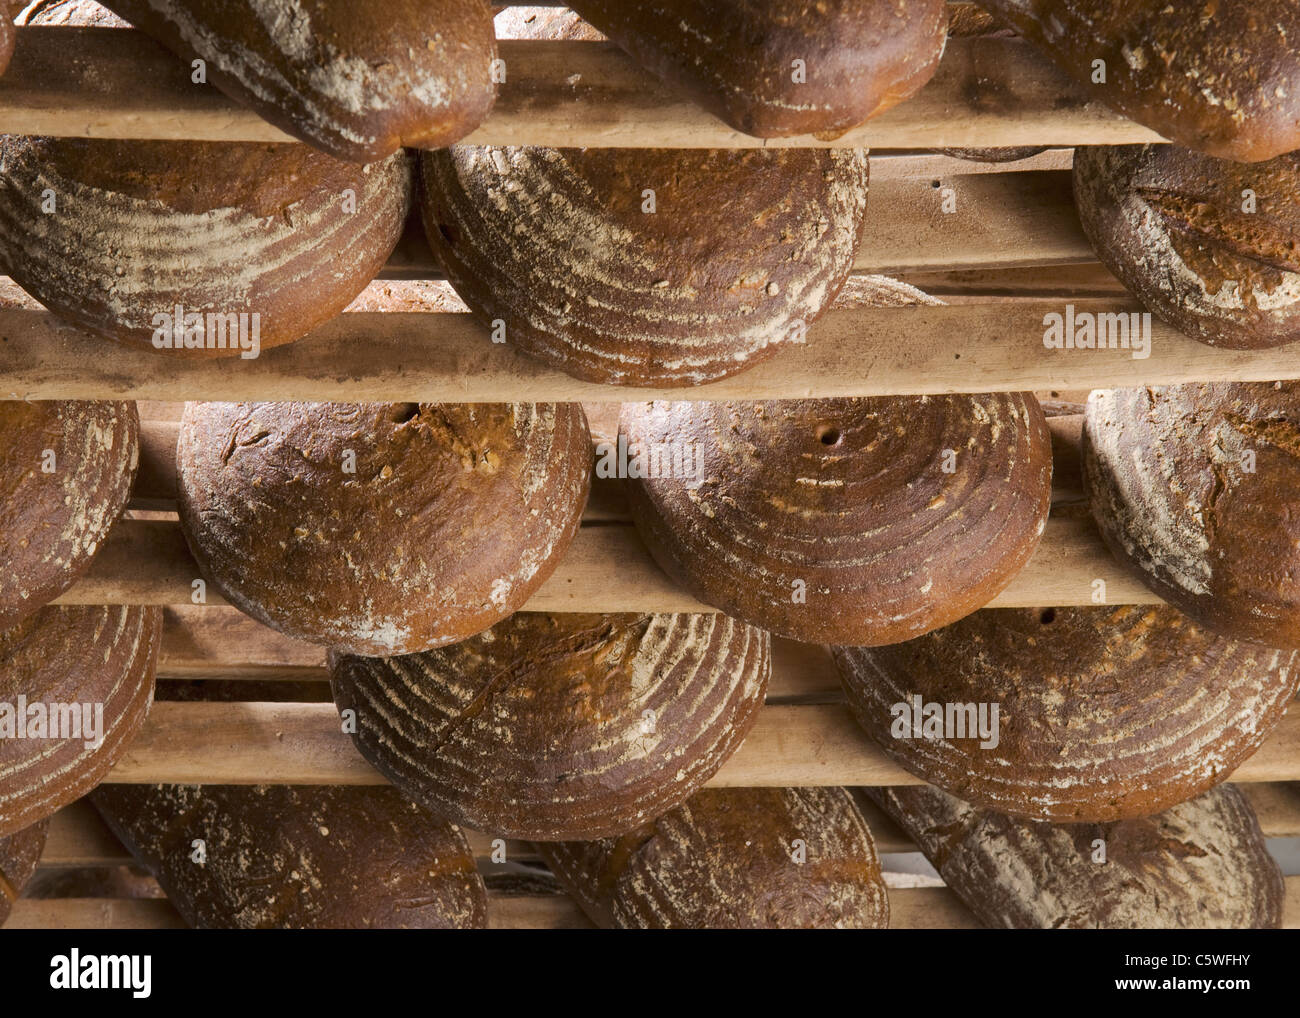 Loaves of bread in rack - Stock Image